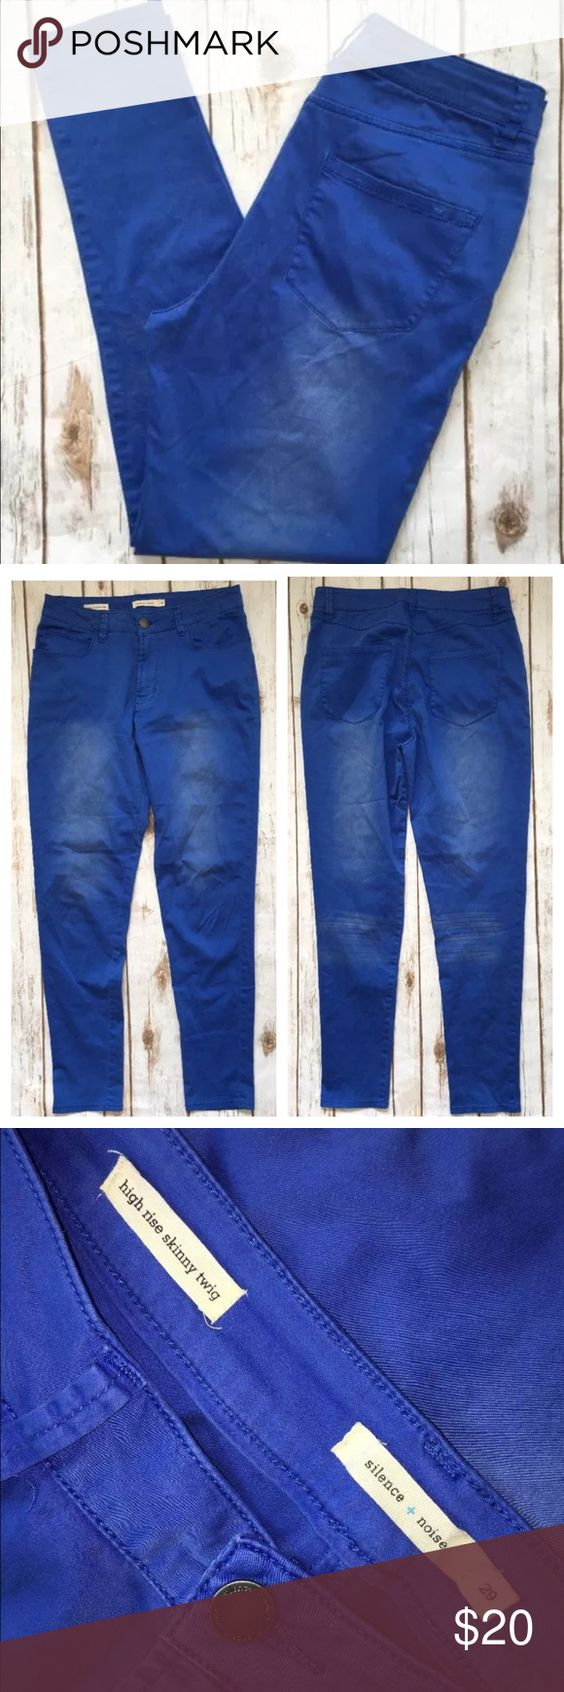 """Silence + Noise Jeans 29 High Rise Skinny Twig UO Tag Size - 29 Waist Measured Across - 15.5"""" Inseam - 29"""" Rise - 11.5"""" Good used condition. Urban Outfitters Jeans Skinny"""